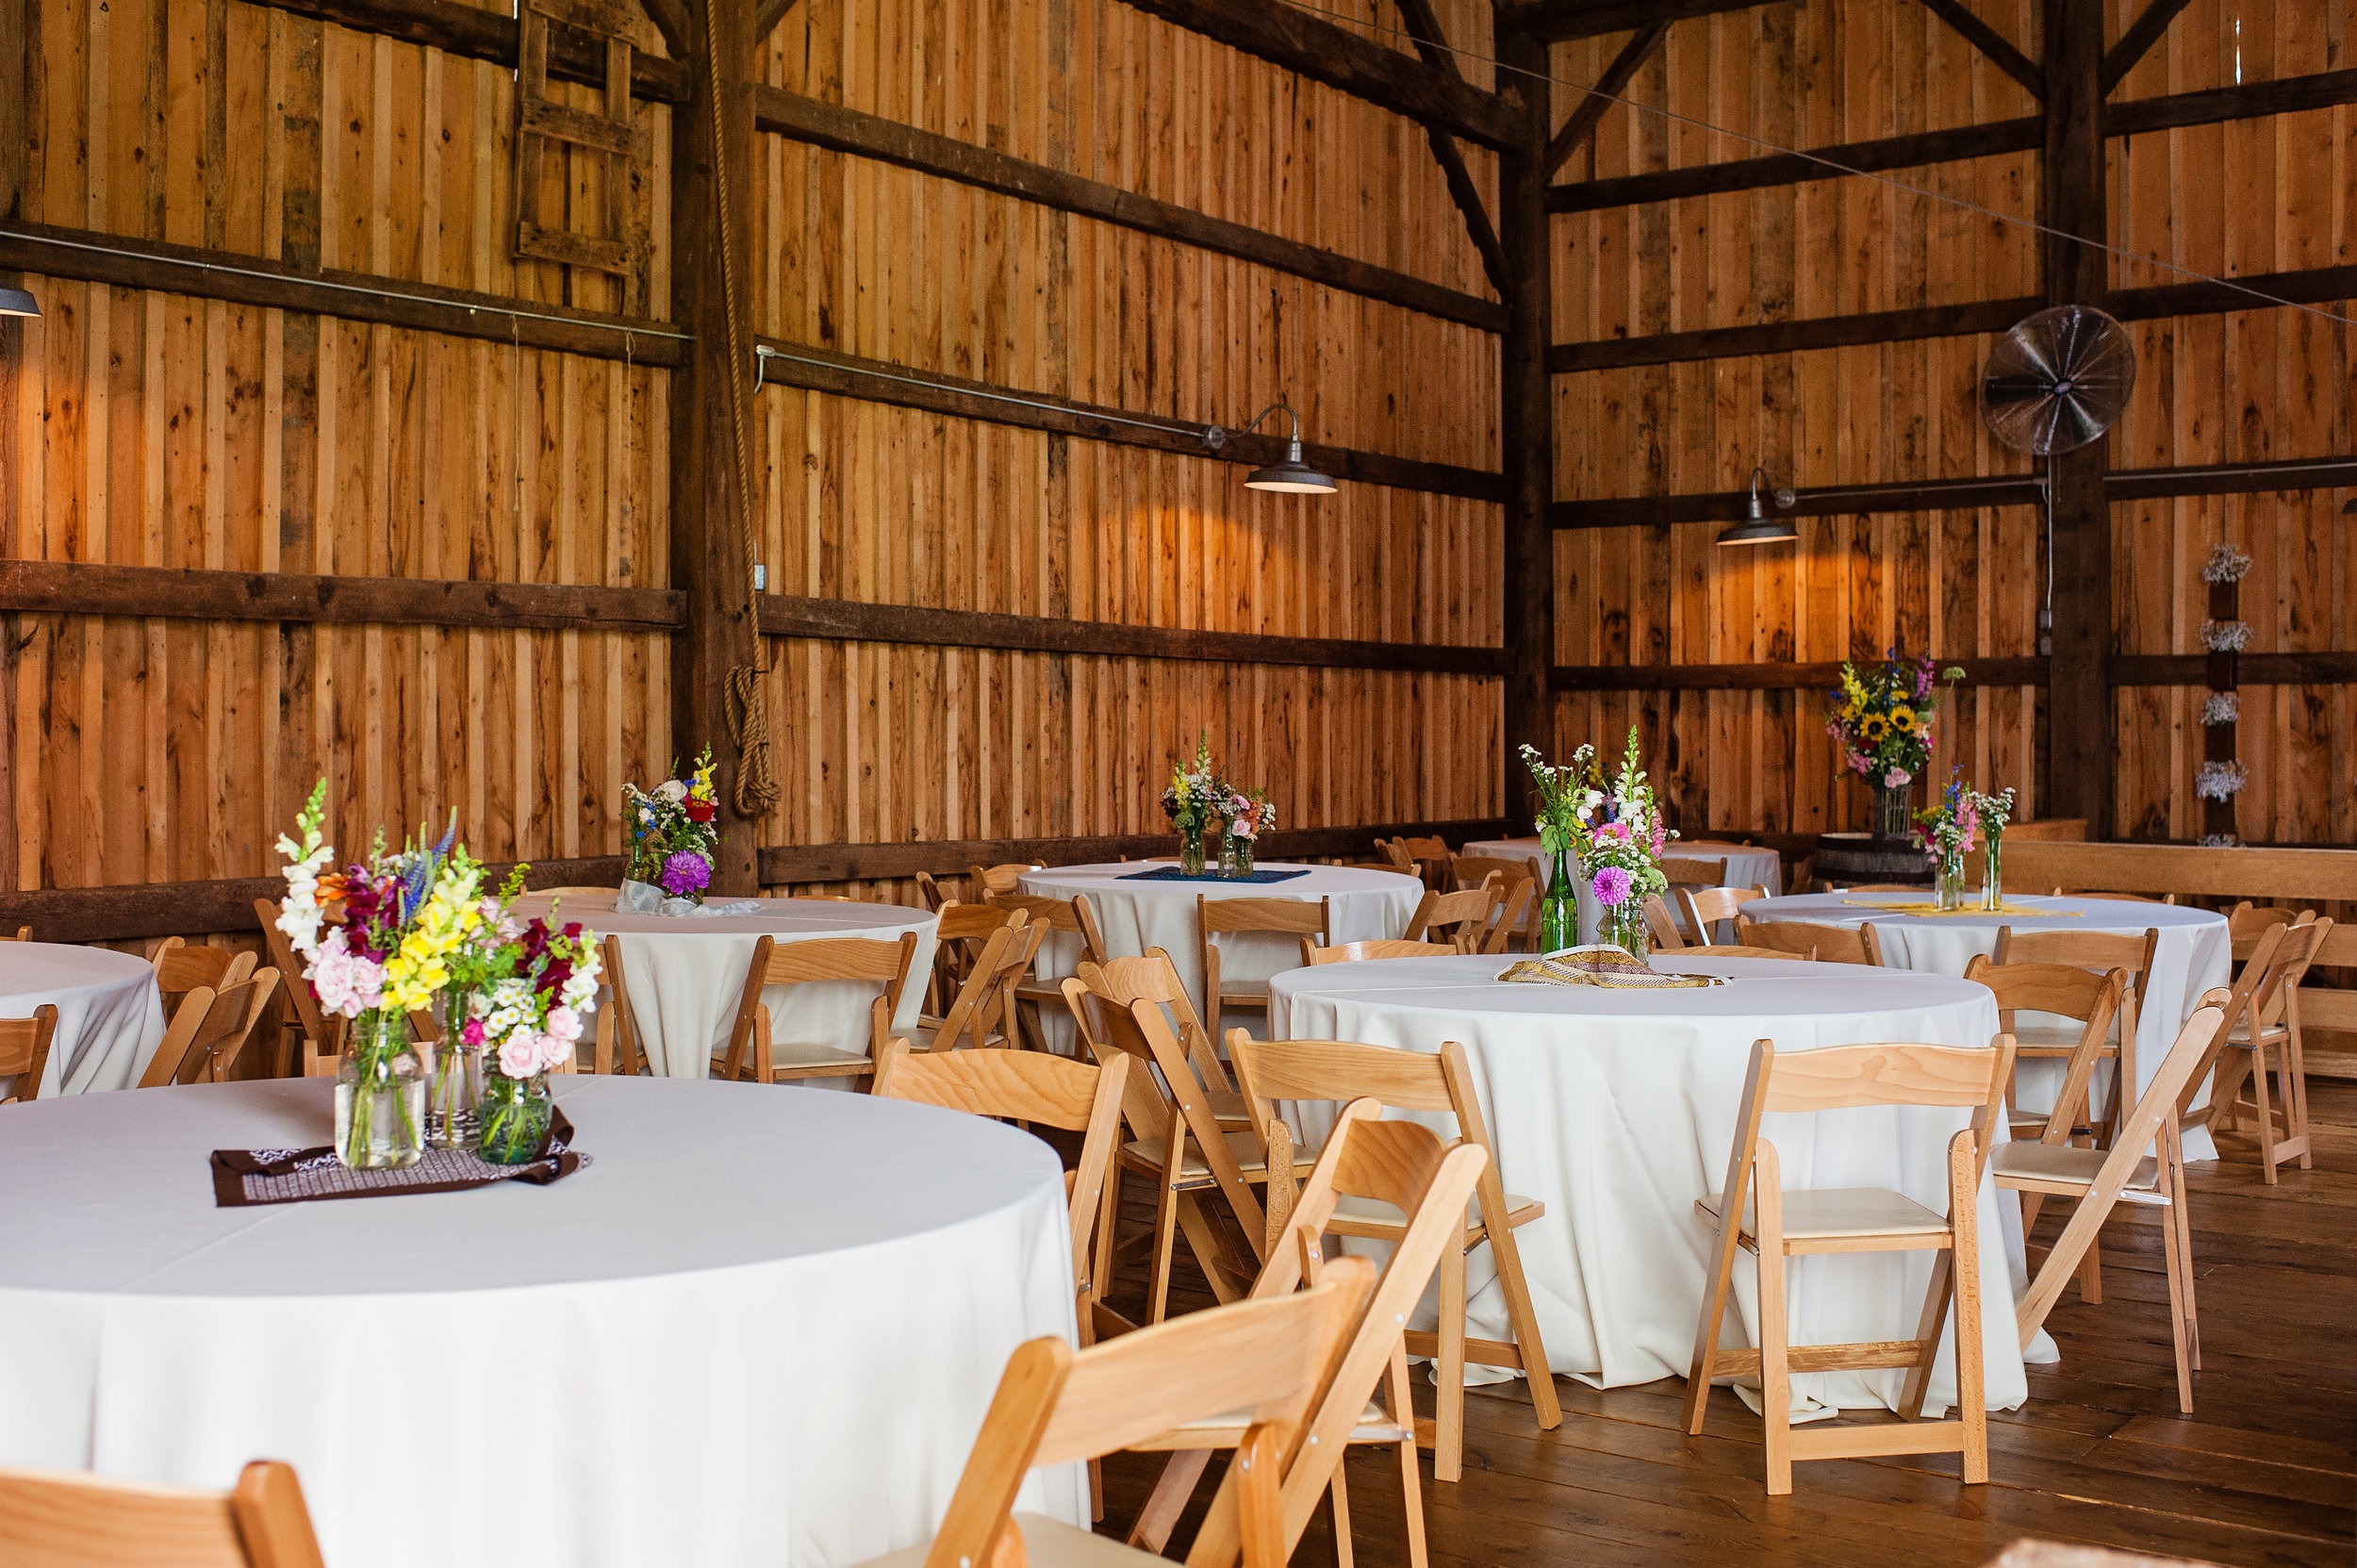 buffalo_wedding_venue_hayloftinthegrove_dawnmgibsonphotography_2.jpg